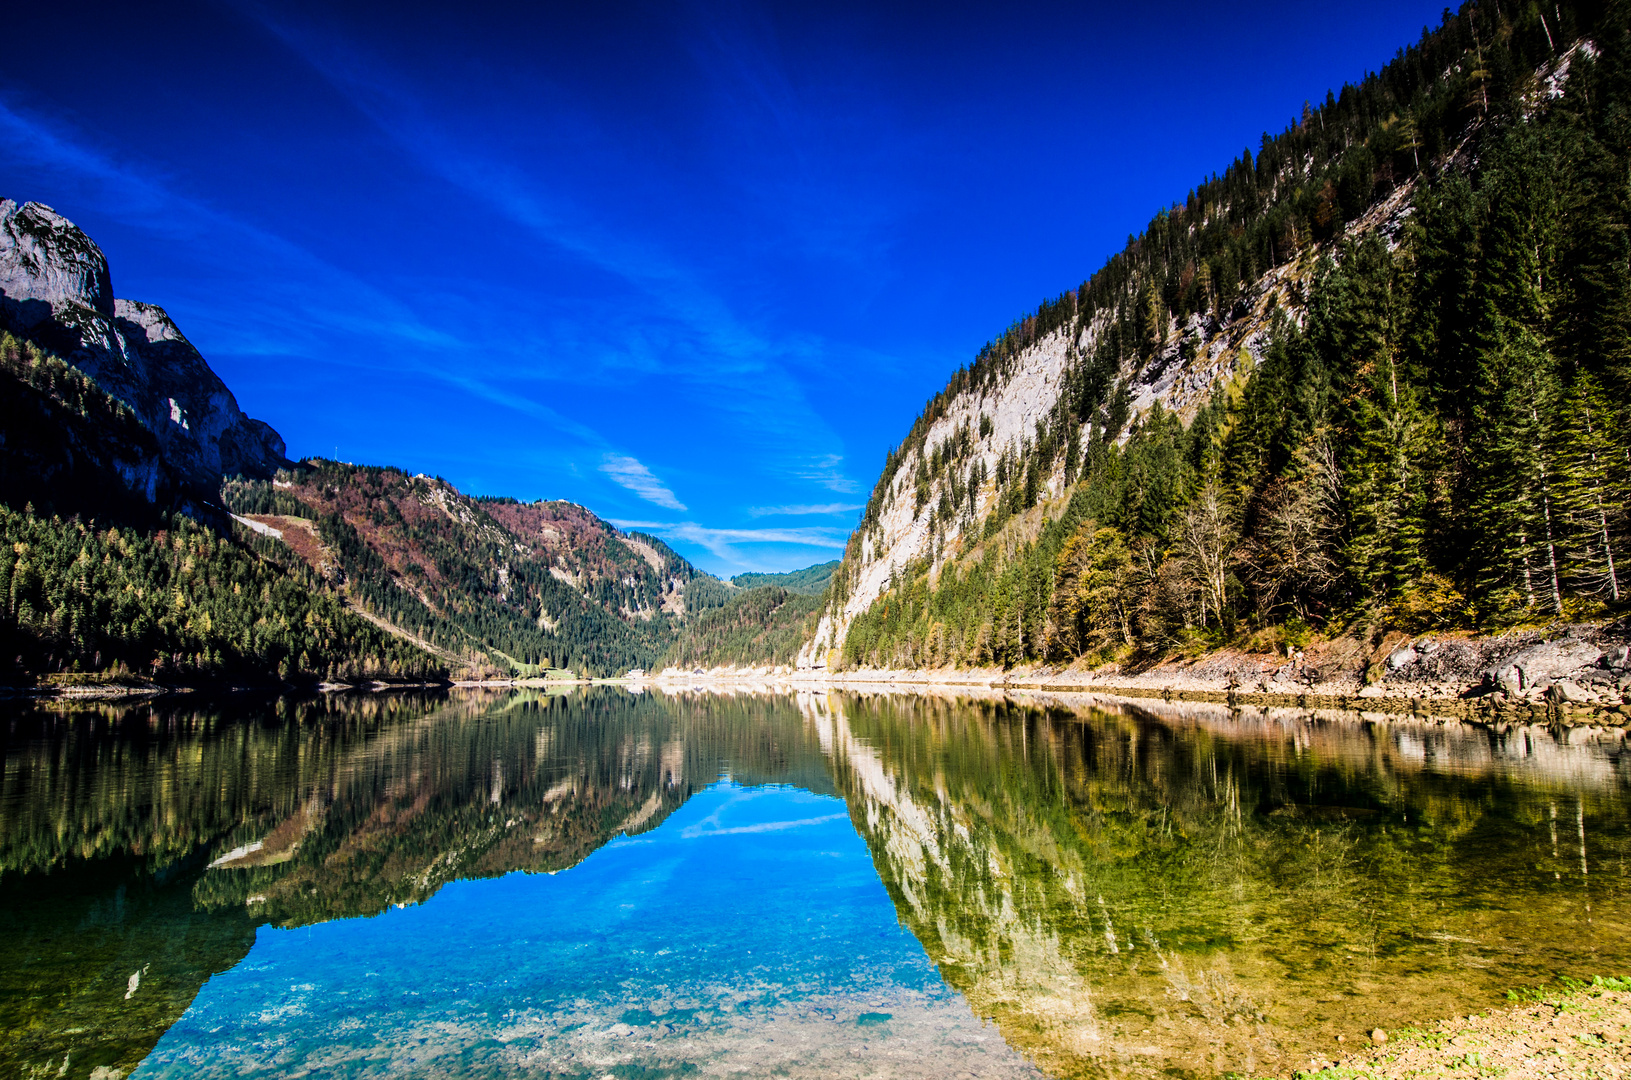 Gosausee 19.10.2014 (1)